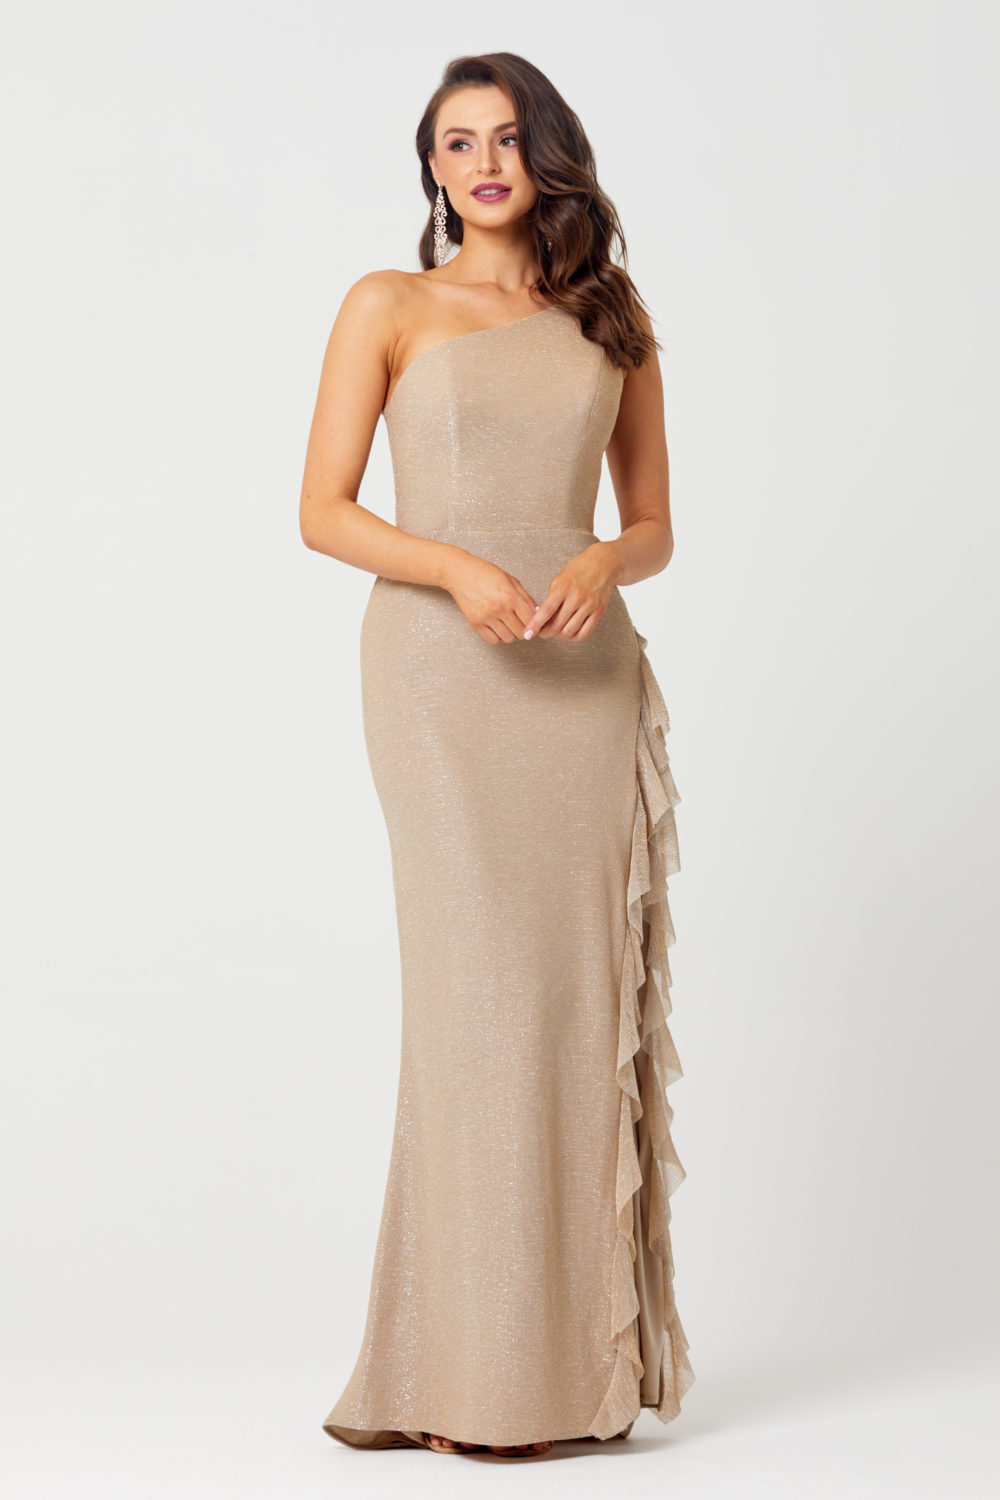 The Corinne One Shoulder Evening Dress - TC279-Front